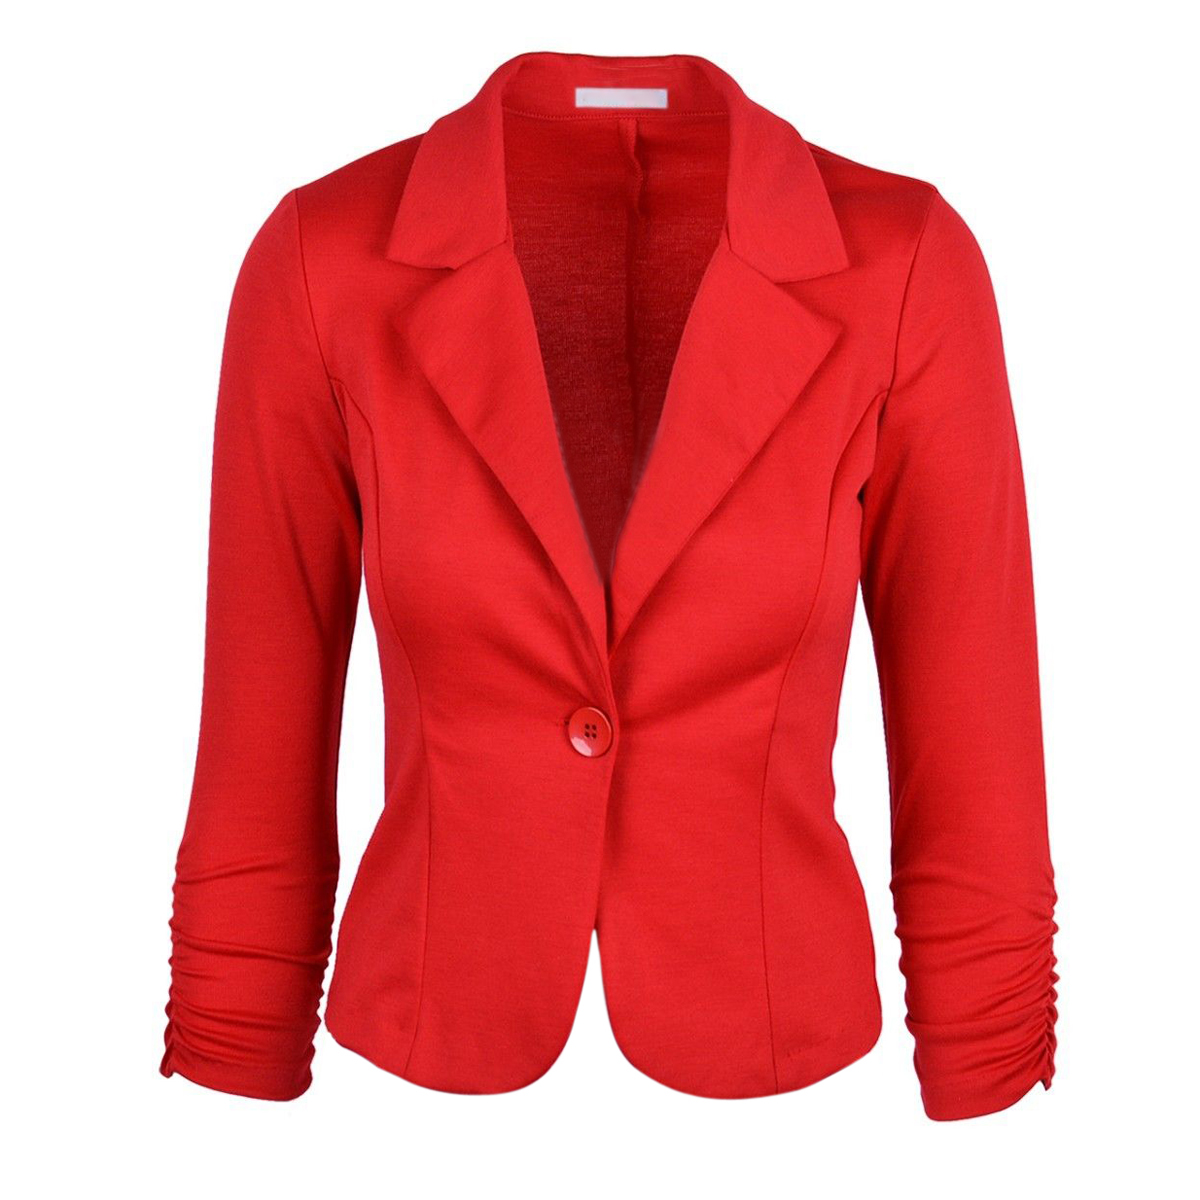 SYB 2019 NEW Womens Blazer Jacket Long Sleeve Candy Button Red